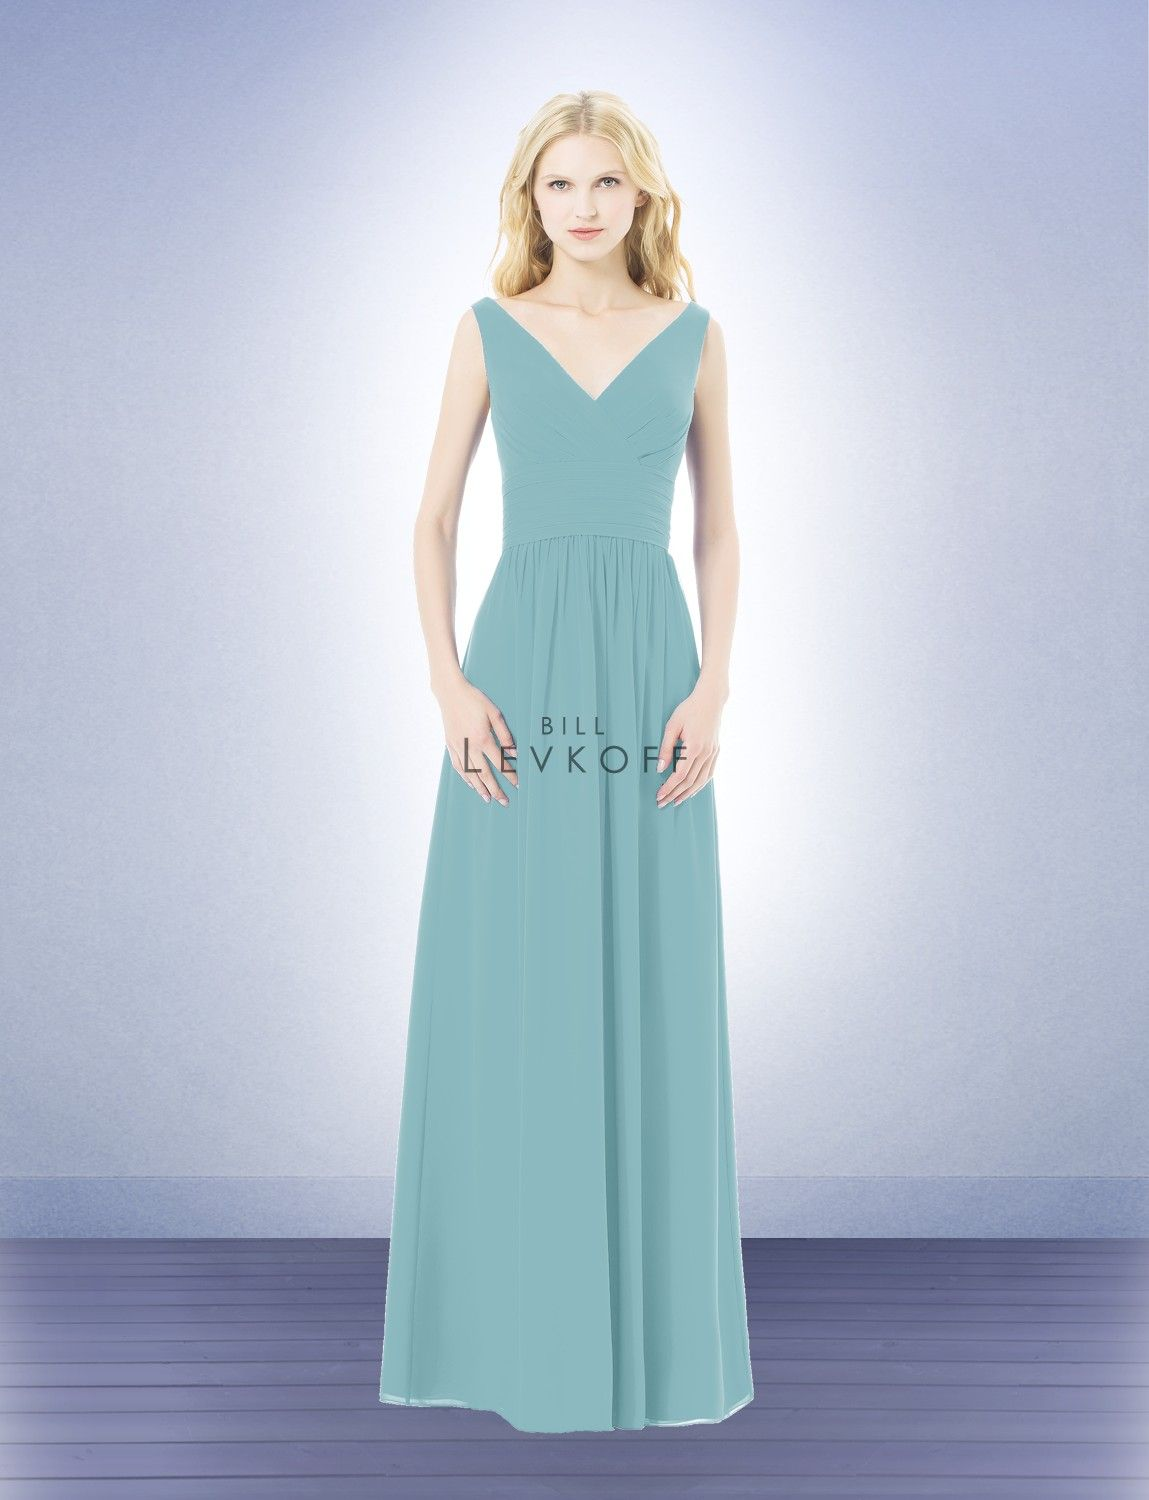 M o g love this designer dress style 498 bridesmaid dresses by love this designer dress style 498 bridesmaid dresses by bill levkoff color ombrellifo Image collections